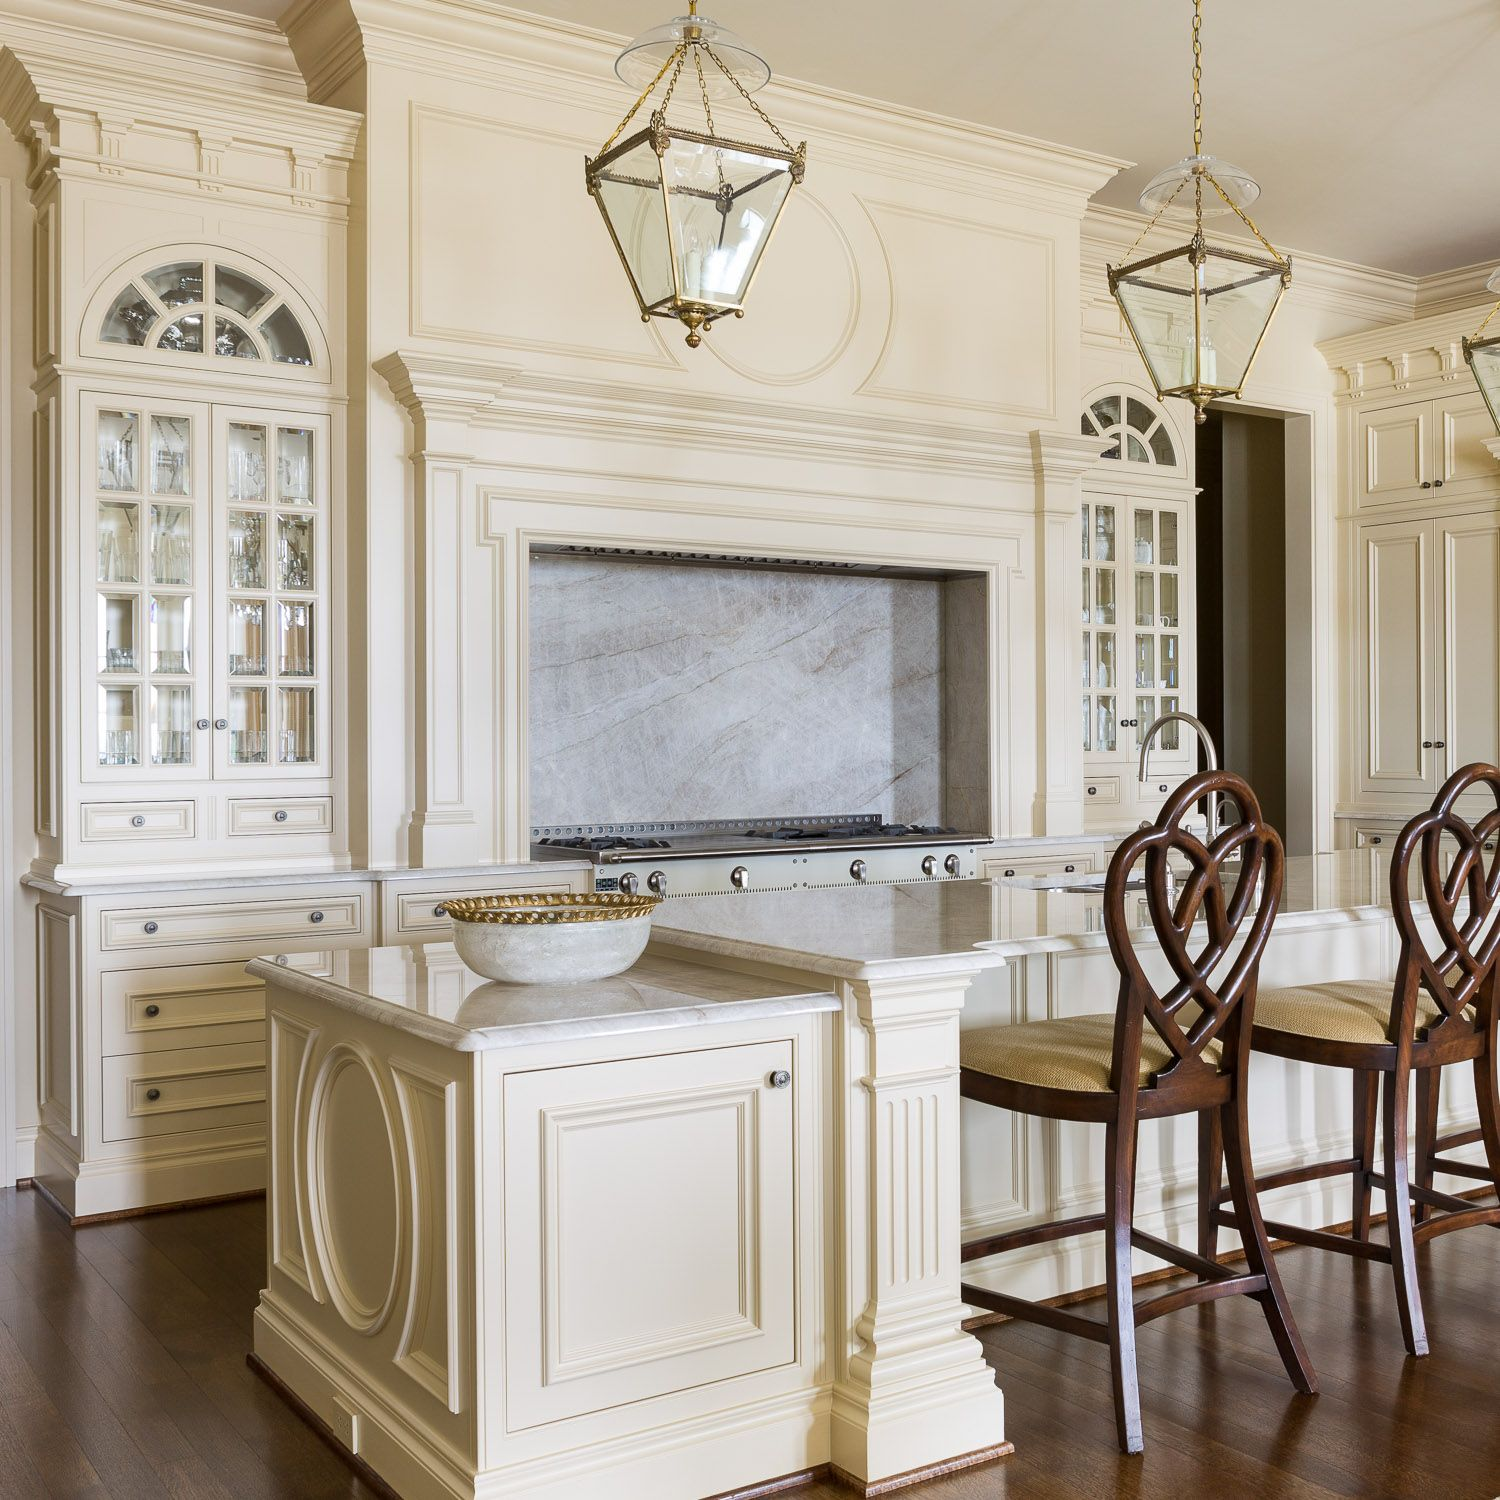 luxury kitchen design clive christian dallas tx square jpg with images cabinet door styles on kitchen interior luxury id=35880